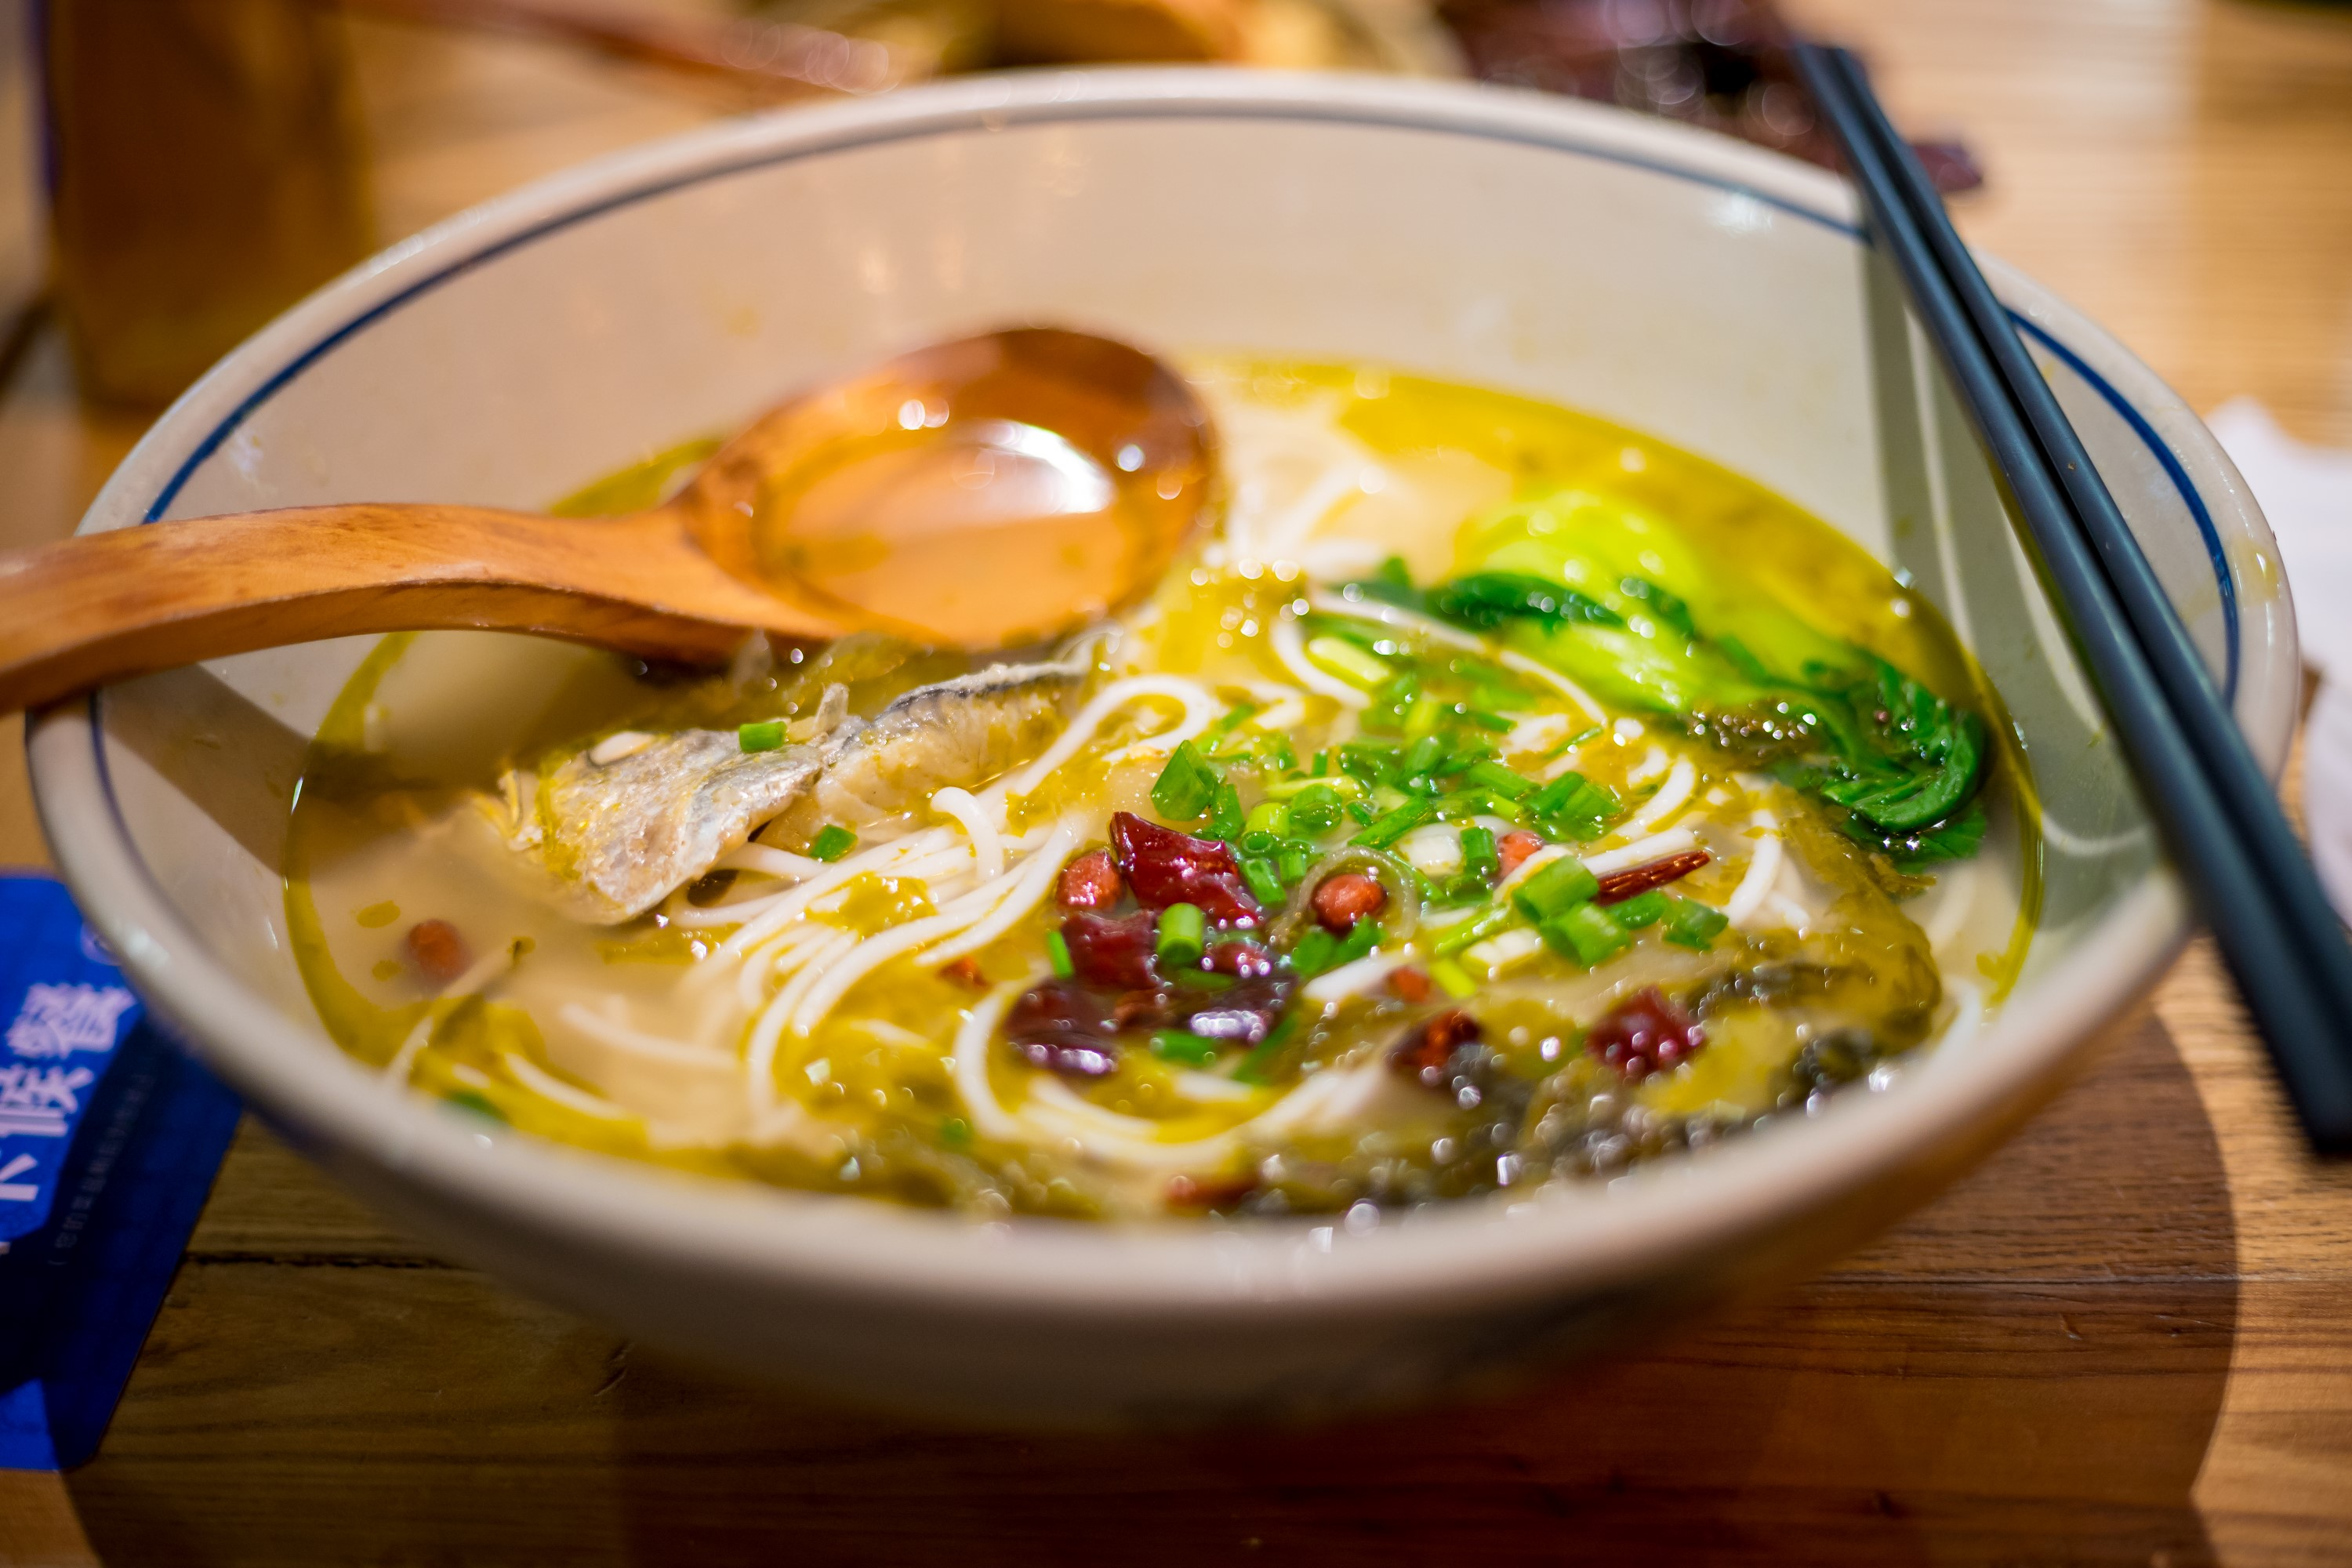 Spicy Fish Rice Noodles